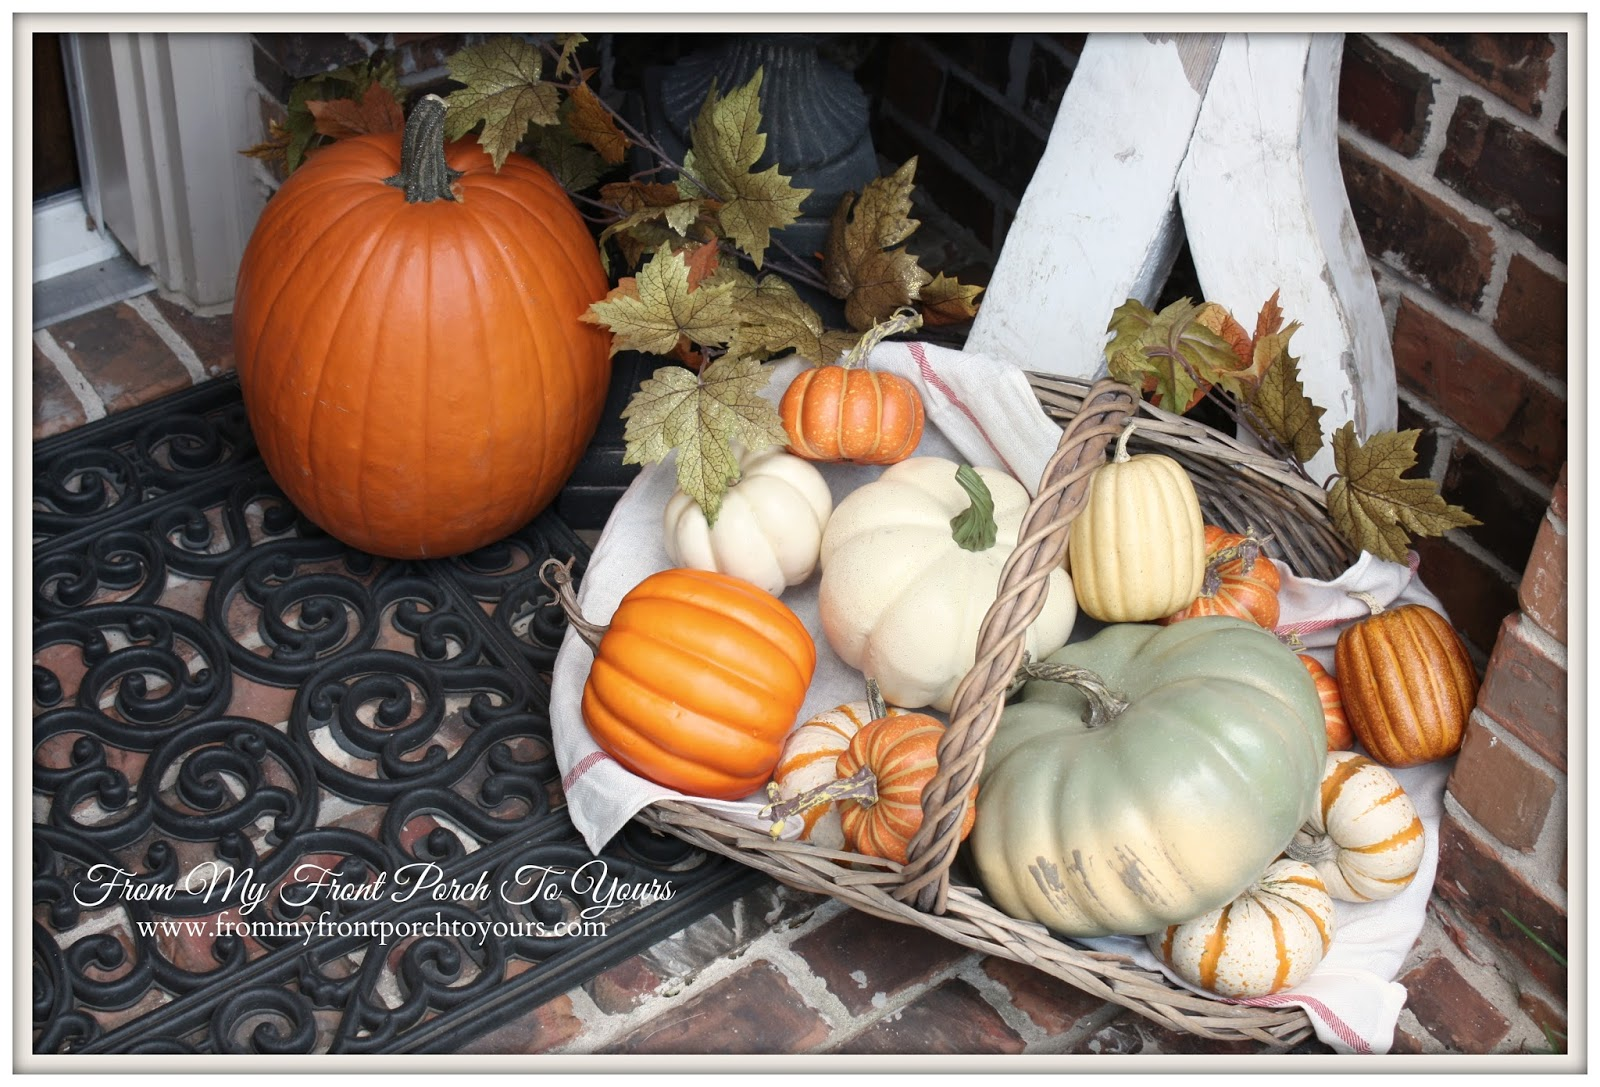 From My Front Porch To Yours- Falling For Fall Porch Party- Real Pumpkins Mixed with Faux Pumpkins